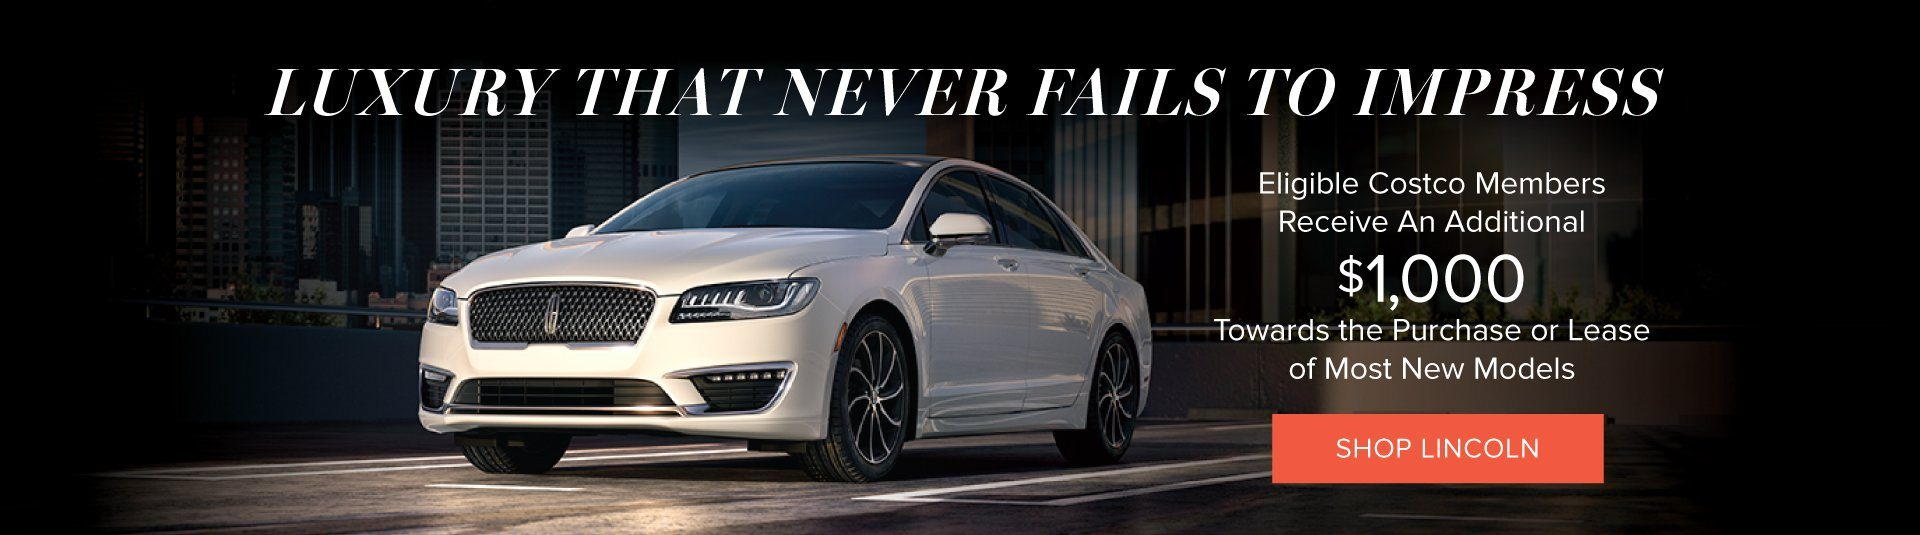 2018 Lincoln Sales Event